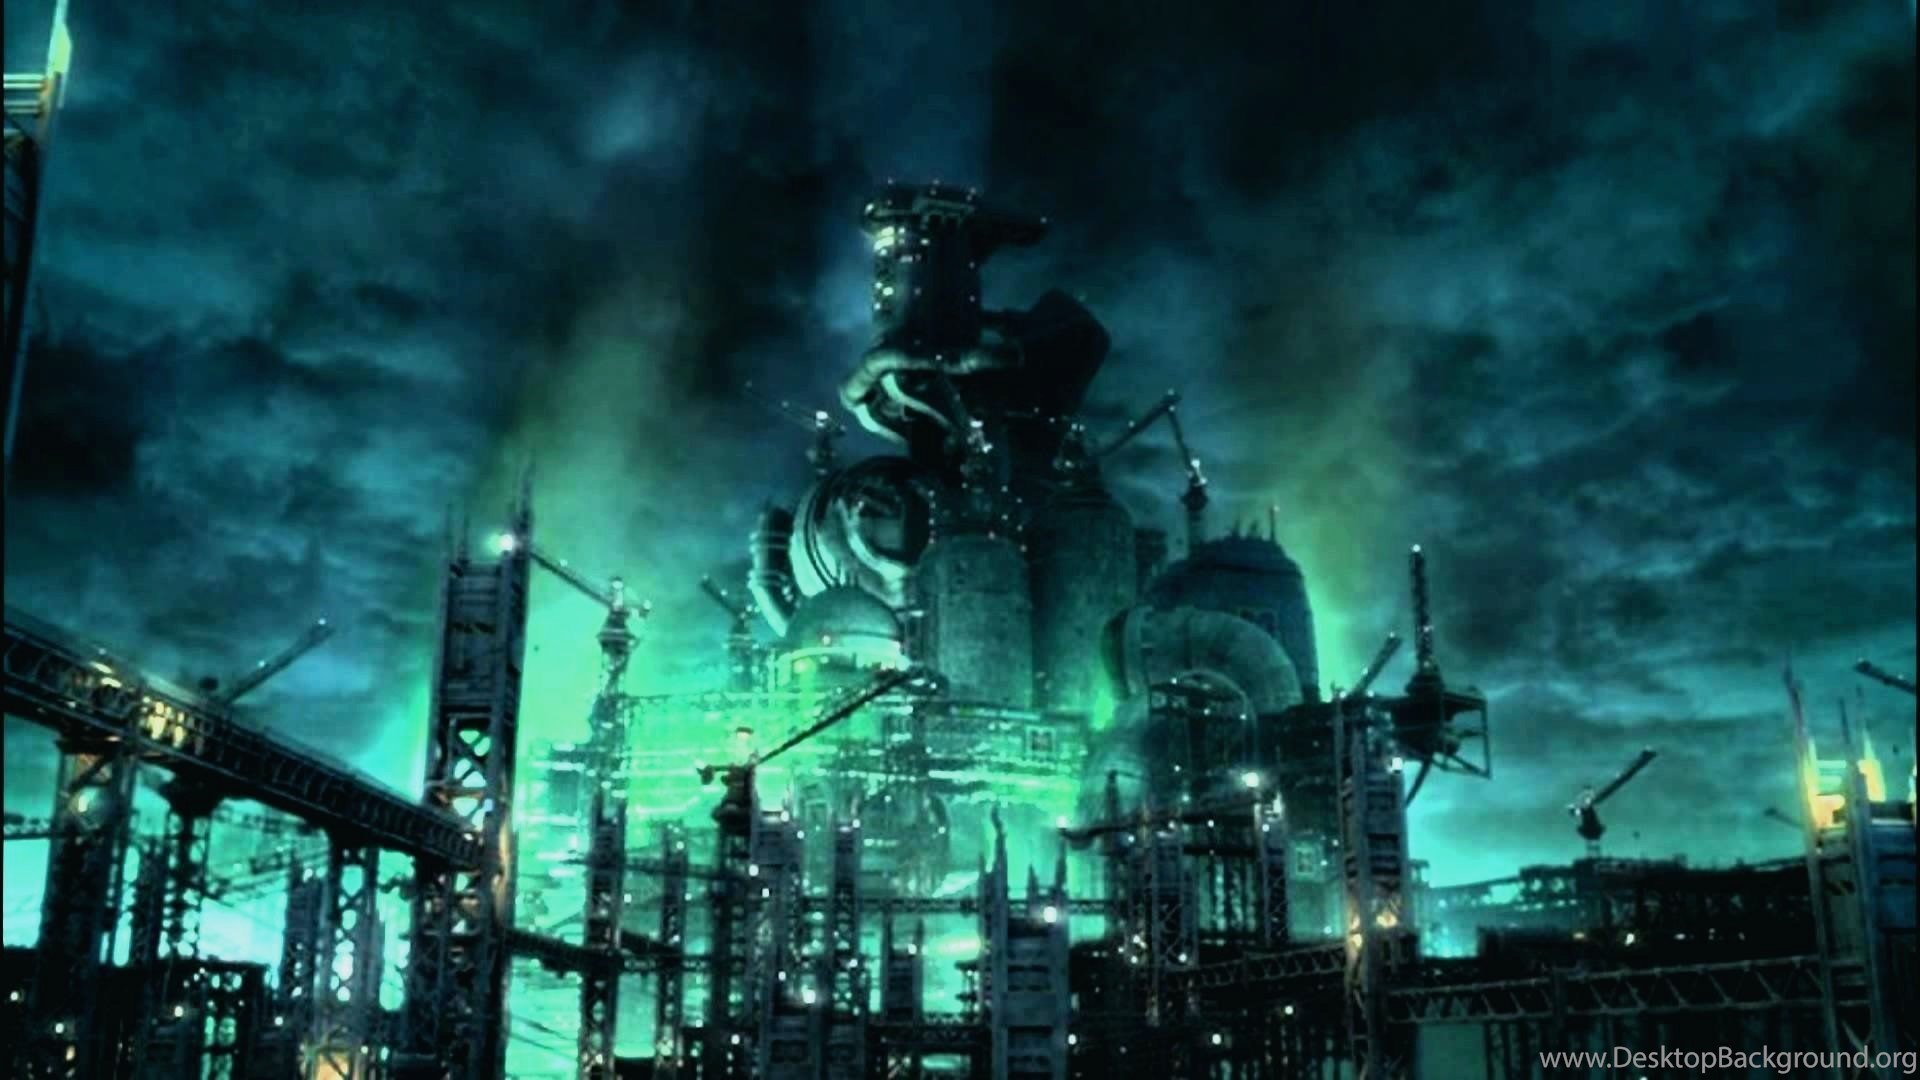 Final fantasy vii wallpapers hd download desktop background popular altavistaventures Gallery